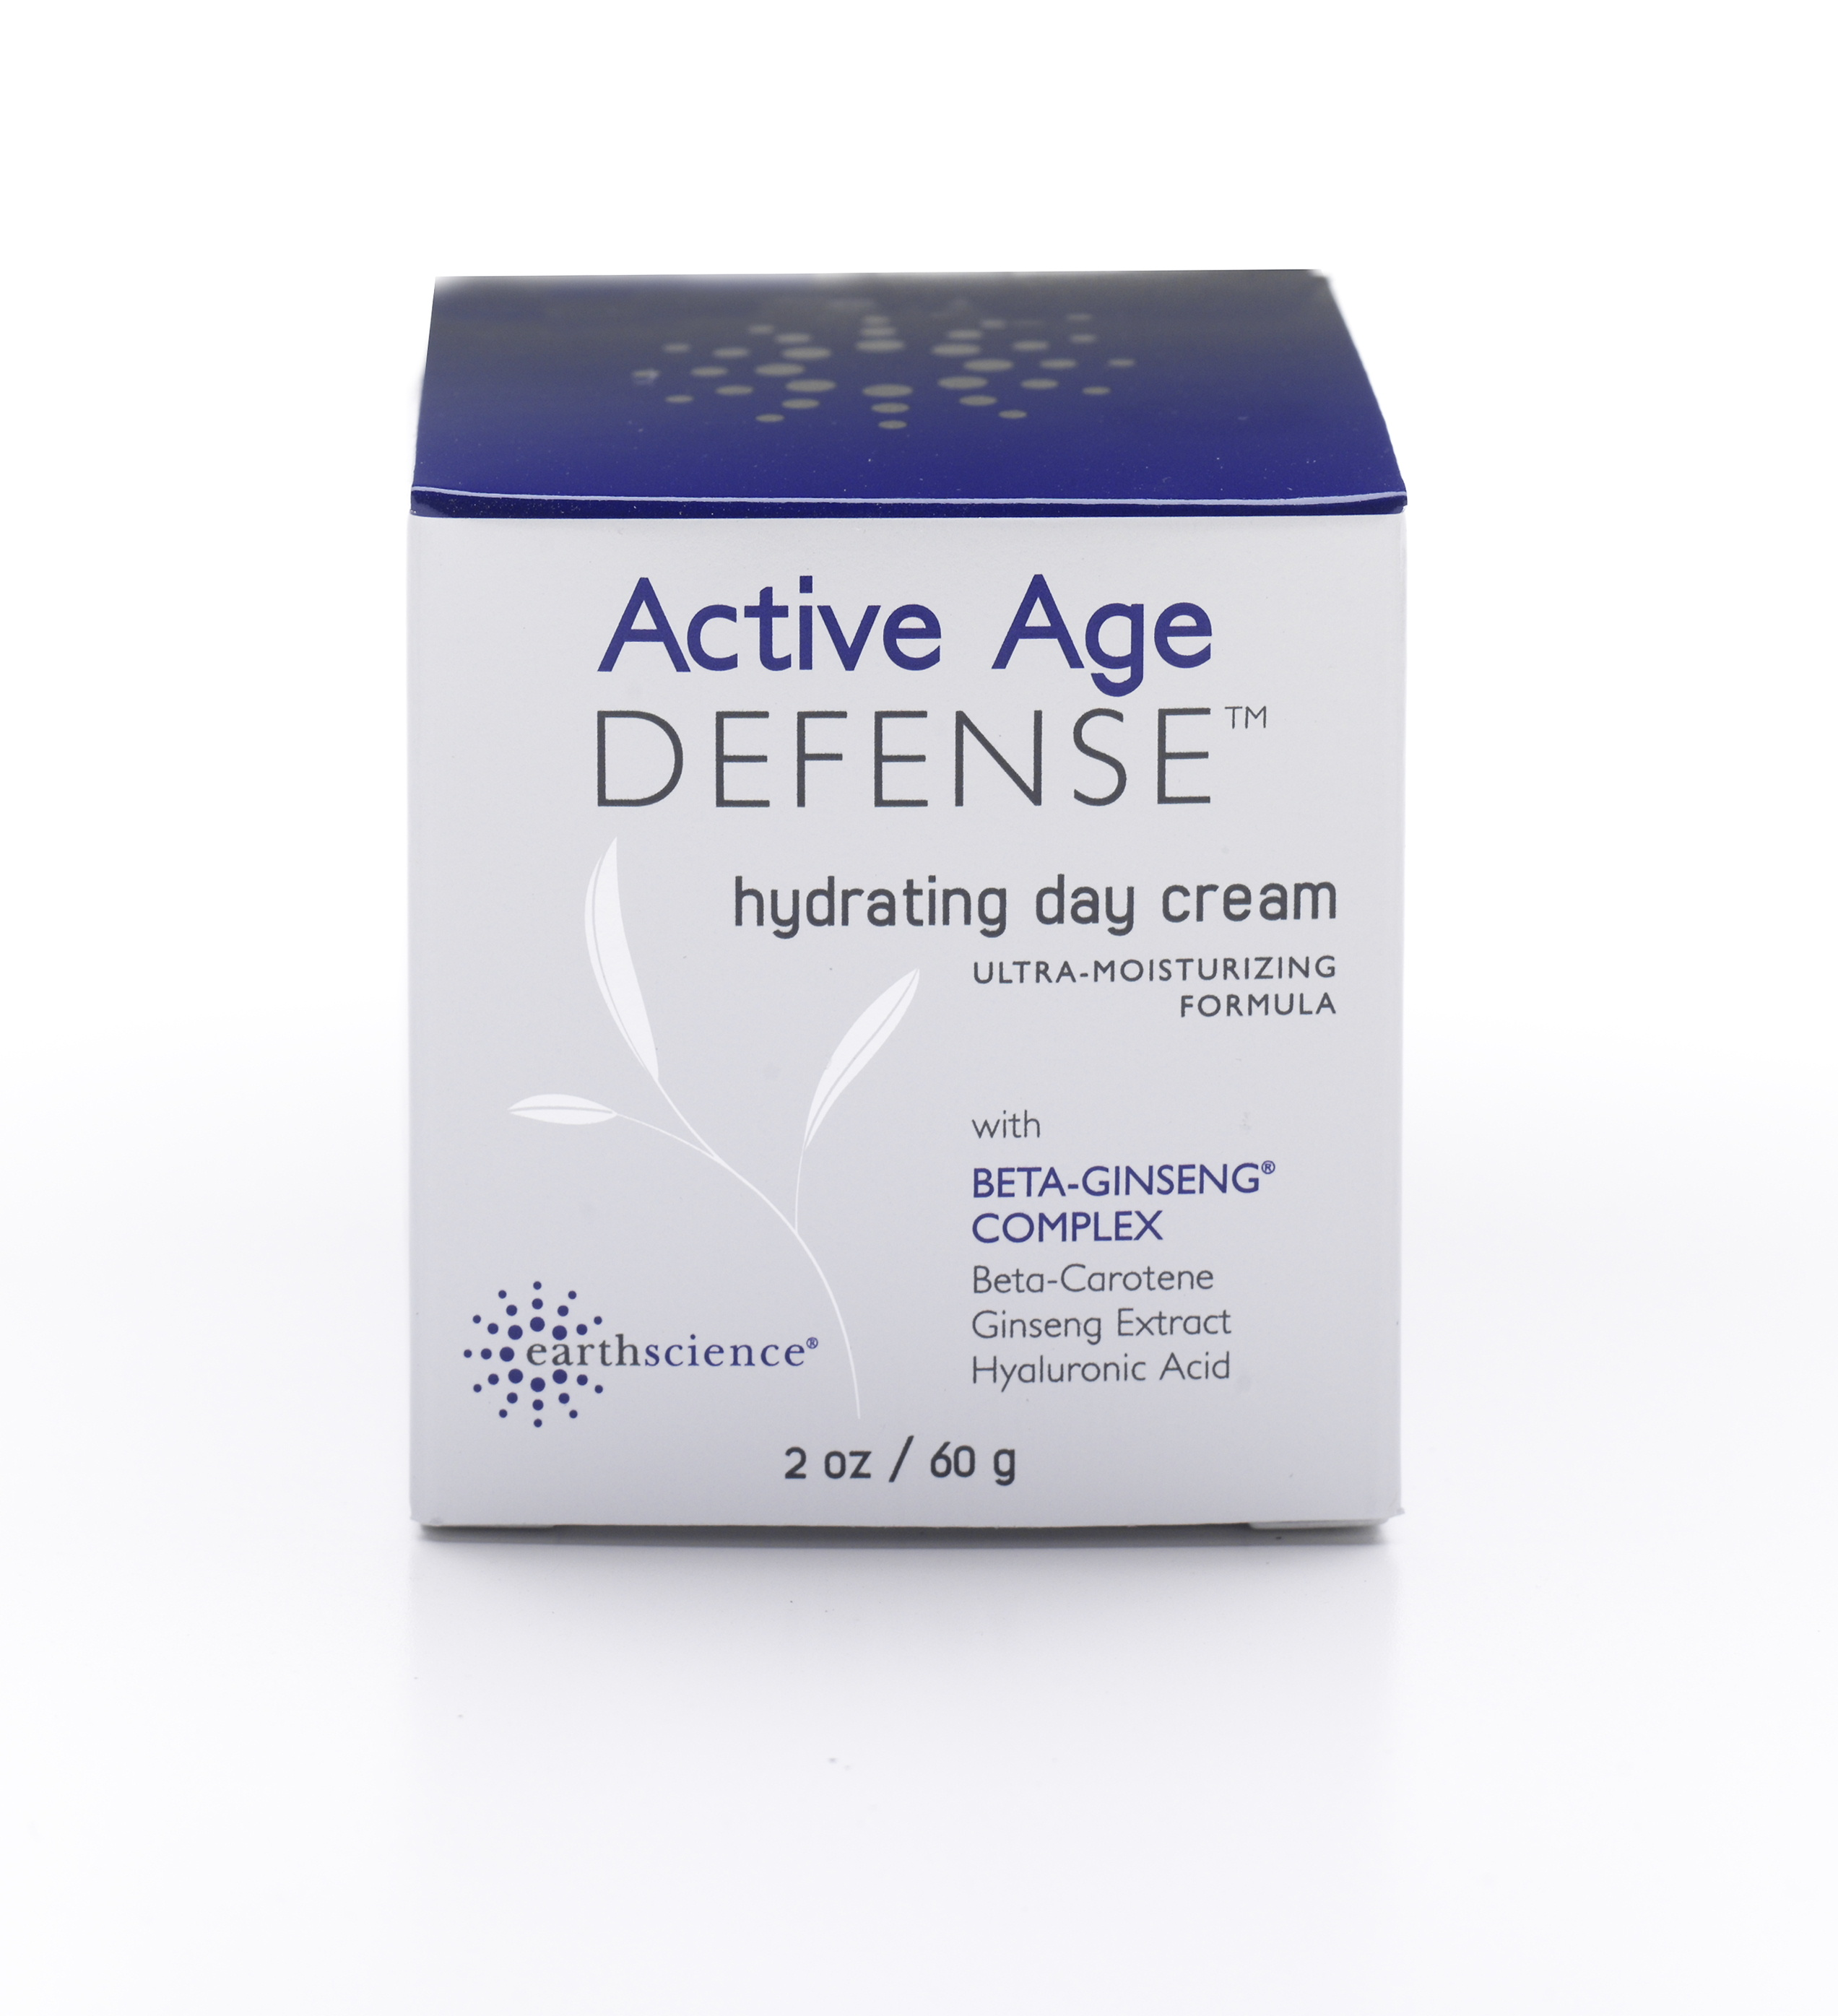 Earth Science Beta-Ginseng Hydrating Day Creme Age Defense - 2 oz